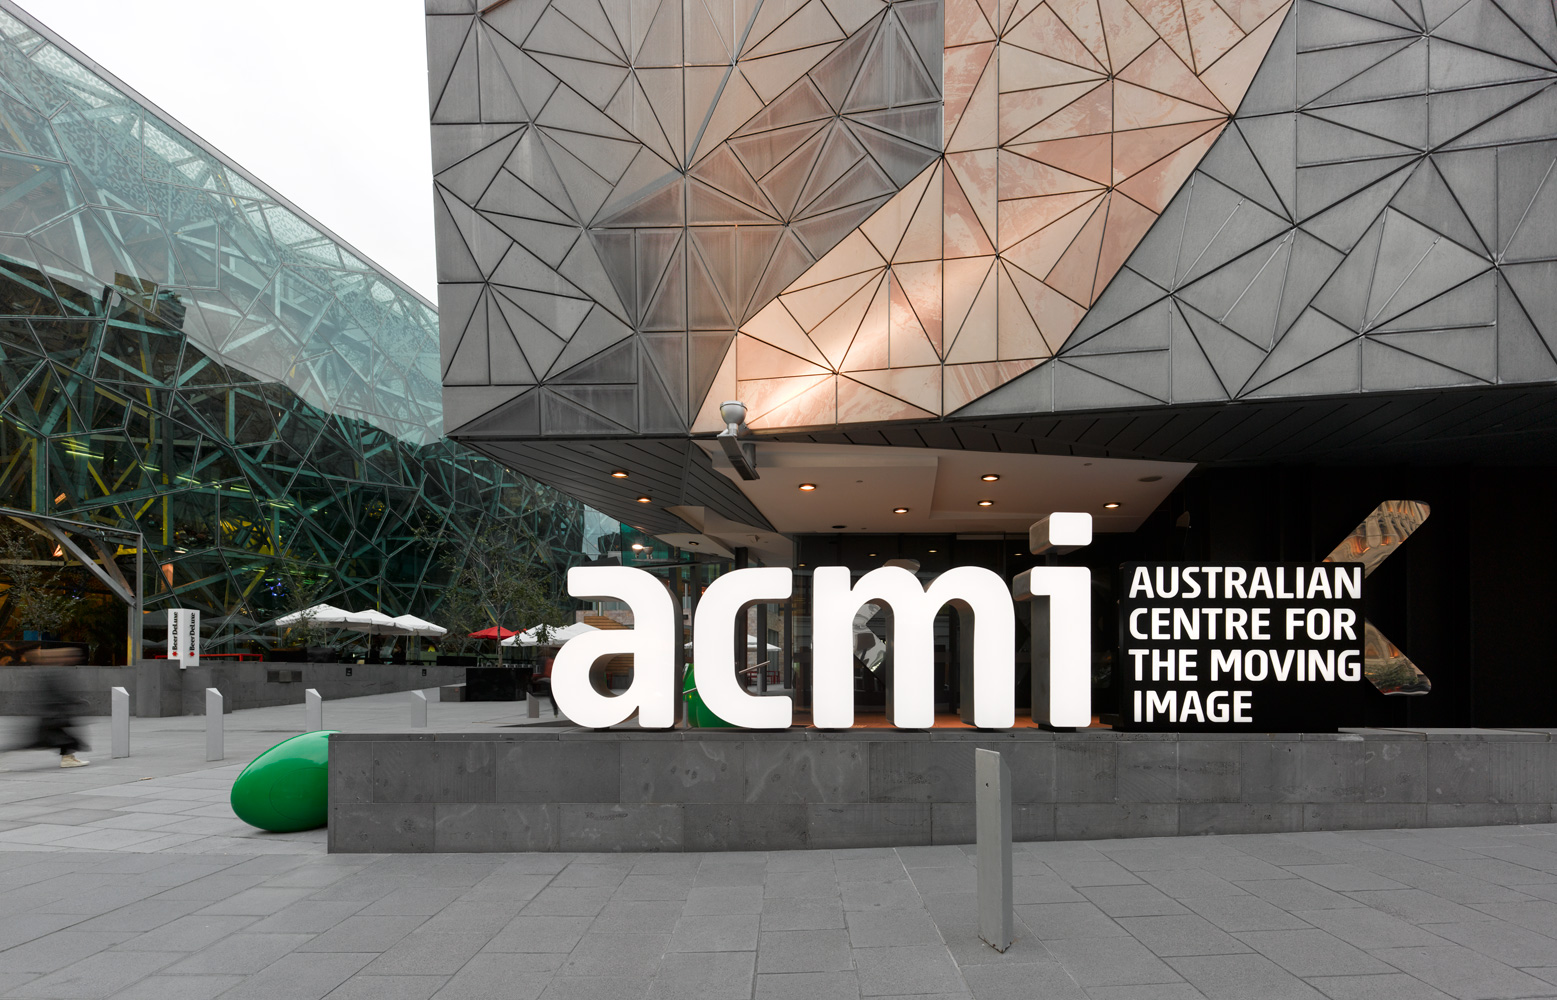 Melbourne's ACMI - Australian Centre for the Moving Image